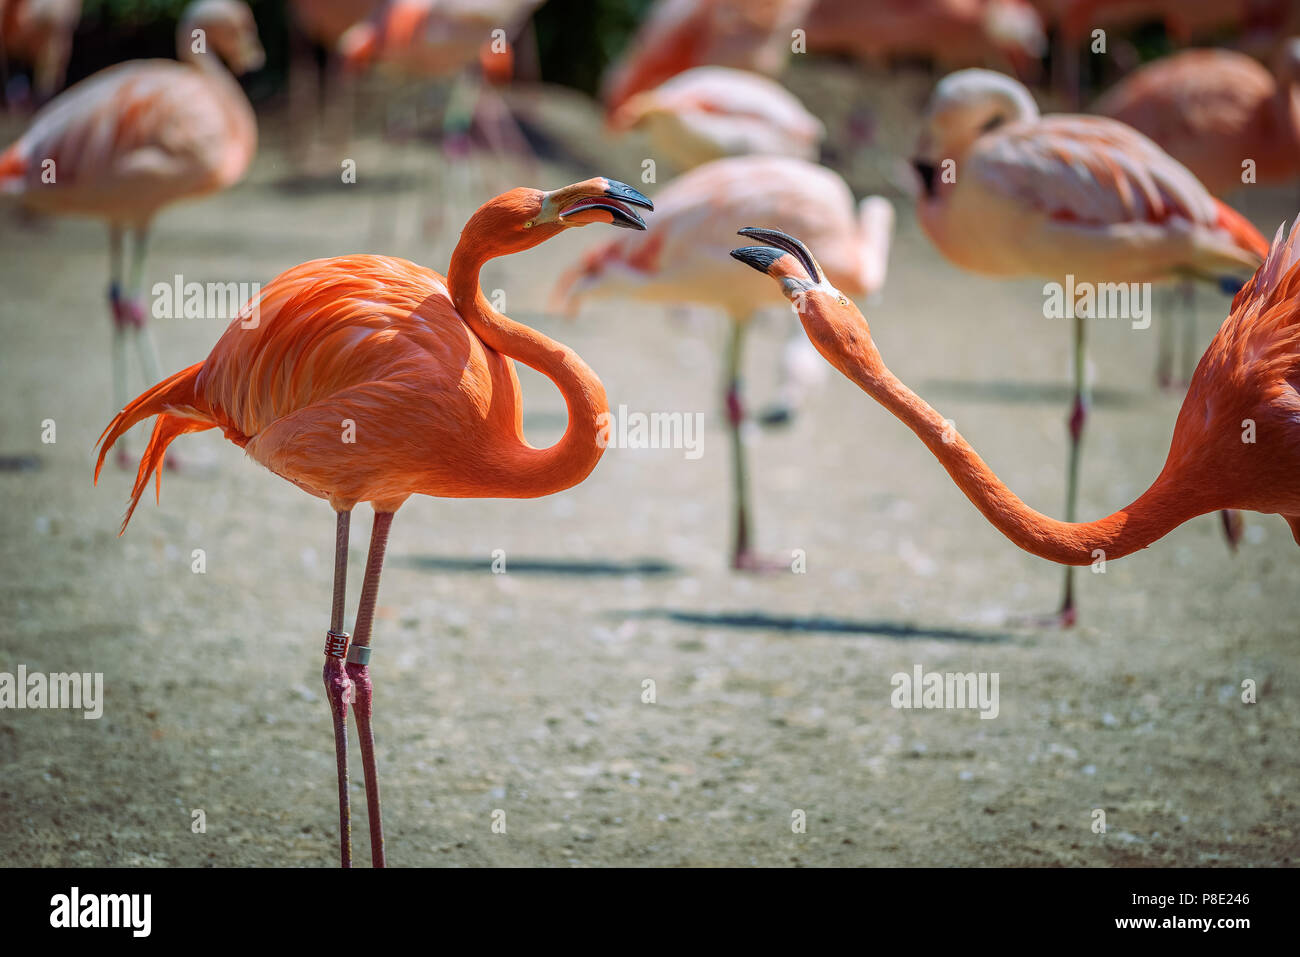 Two Caribbean Flamingos in fight Stock Photo